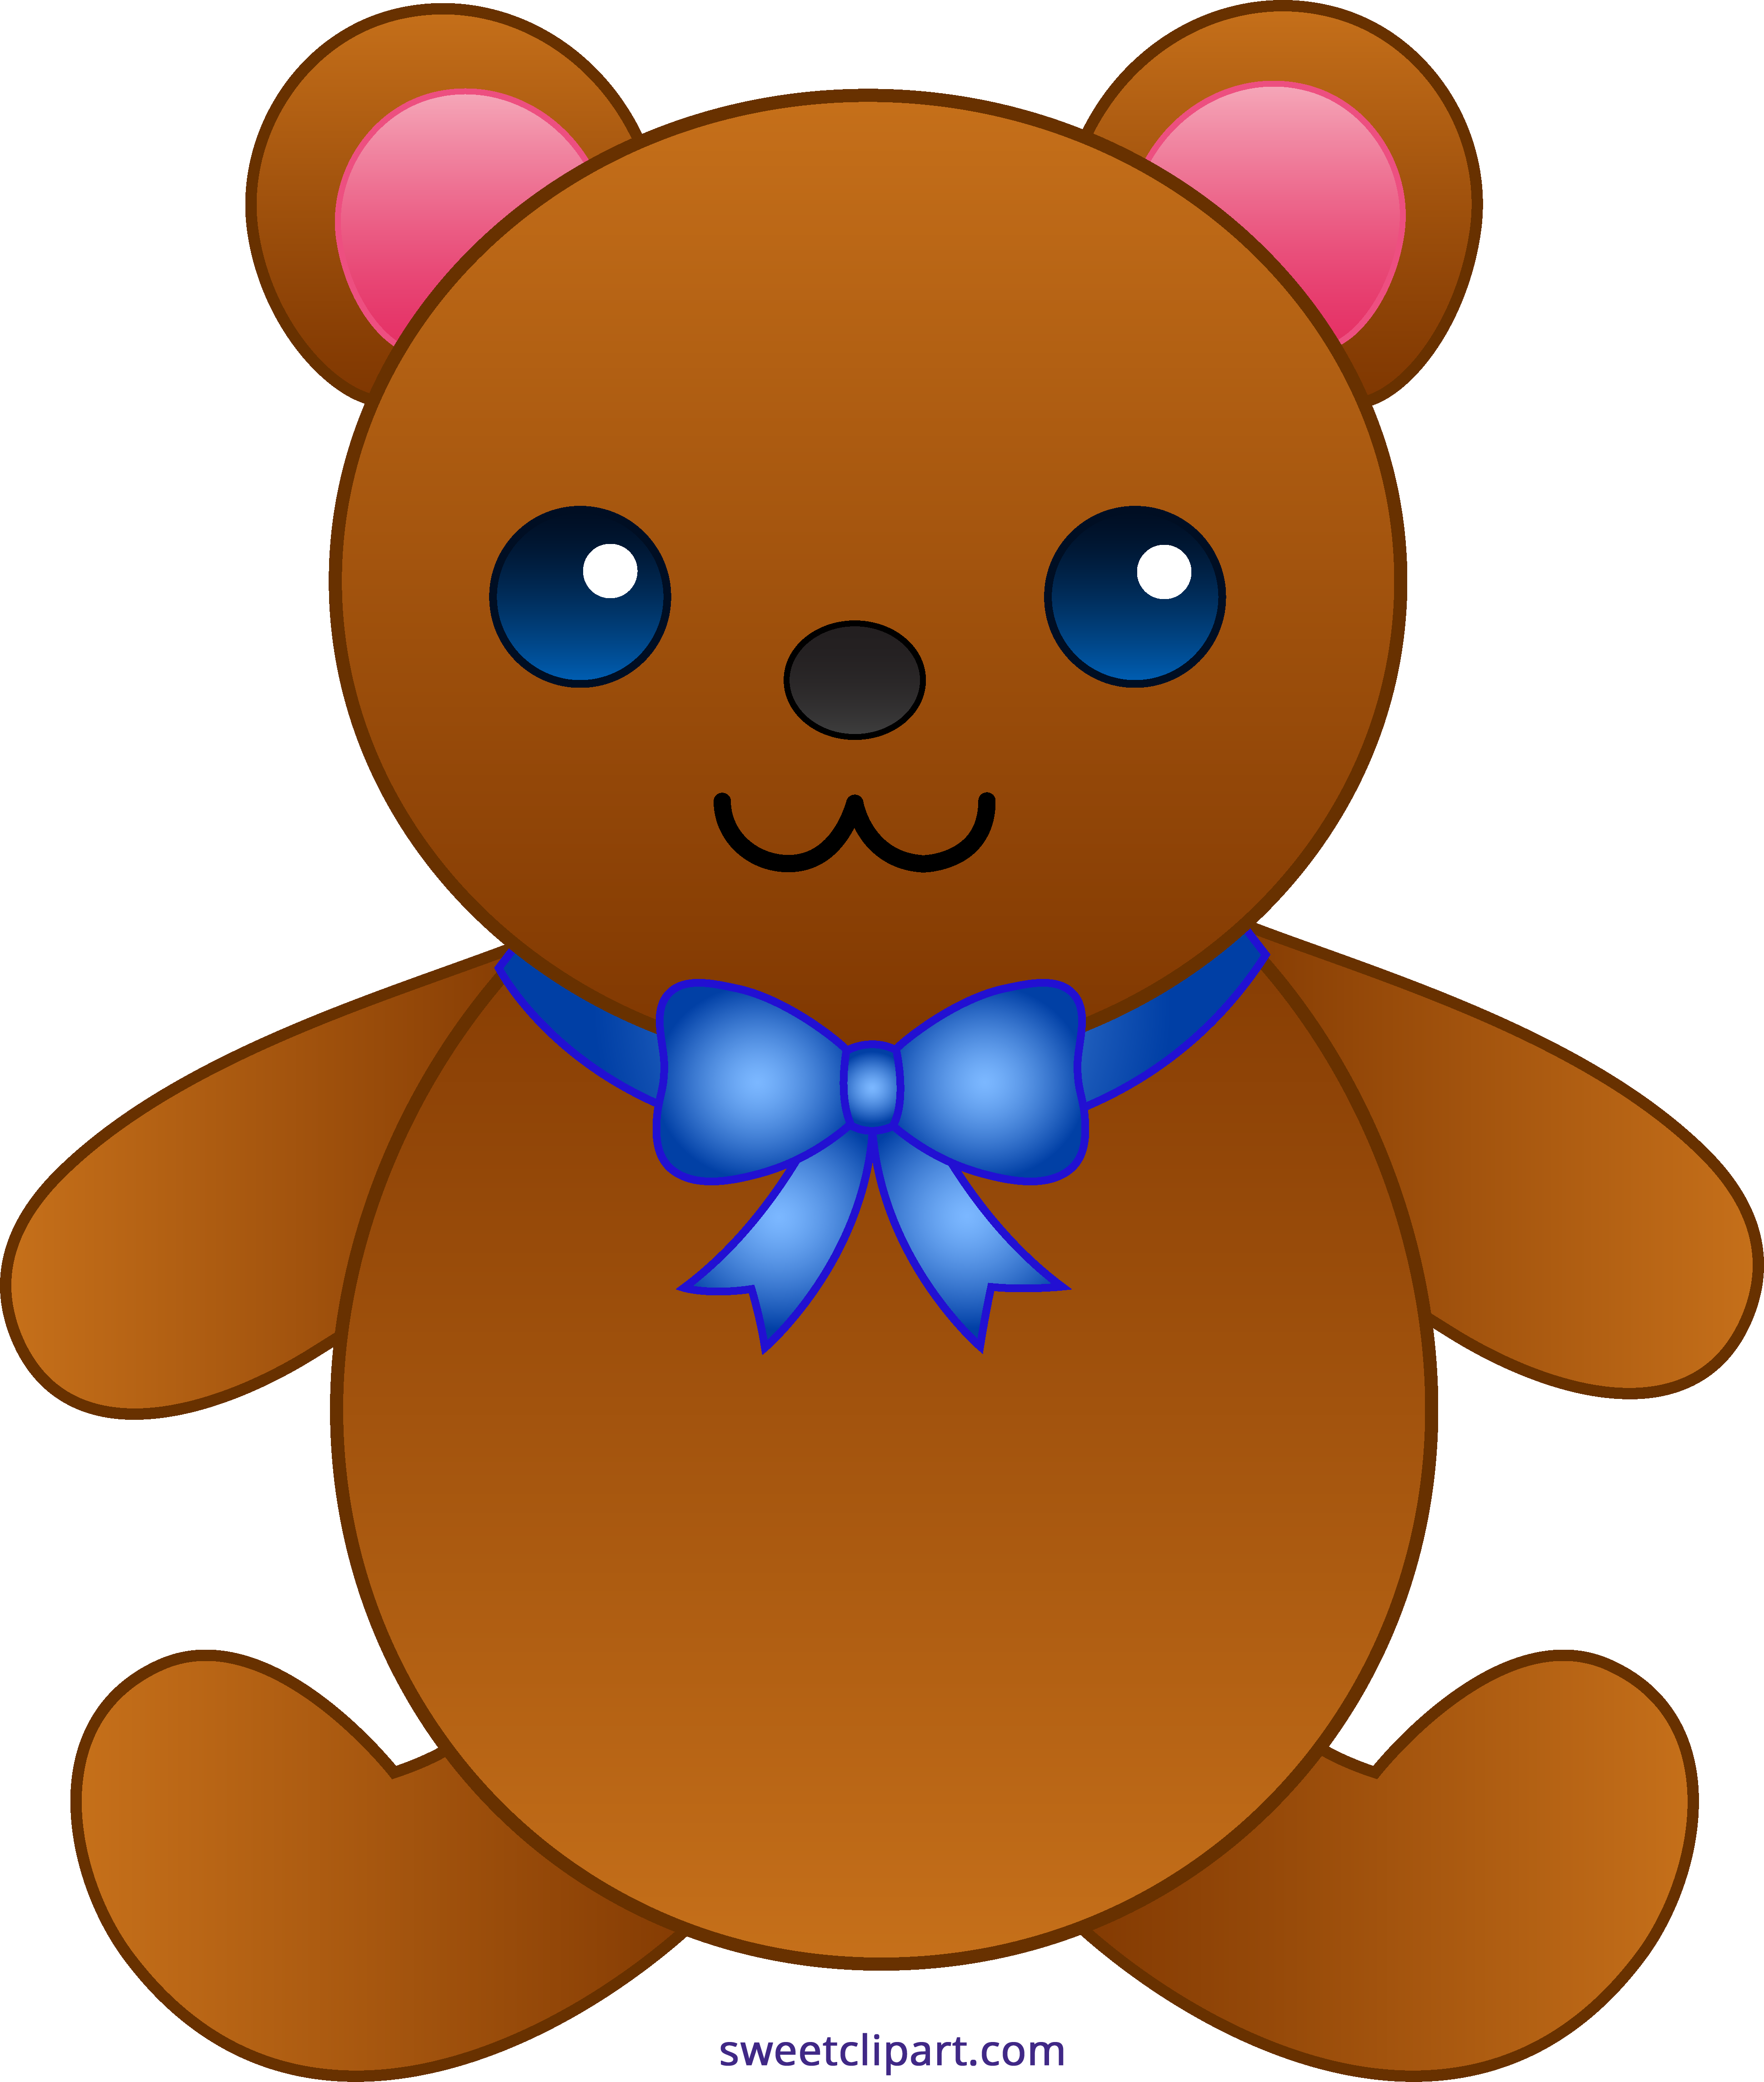 Cute teddy bear with bowtie clipart sweet clip art cute teddy bear with bowtie clipart voltagebd Choice Image